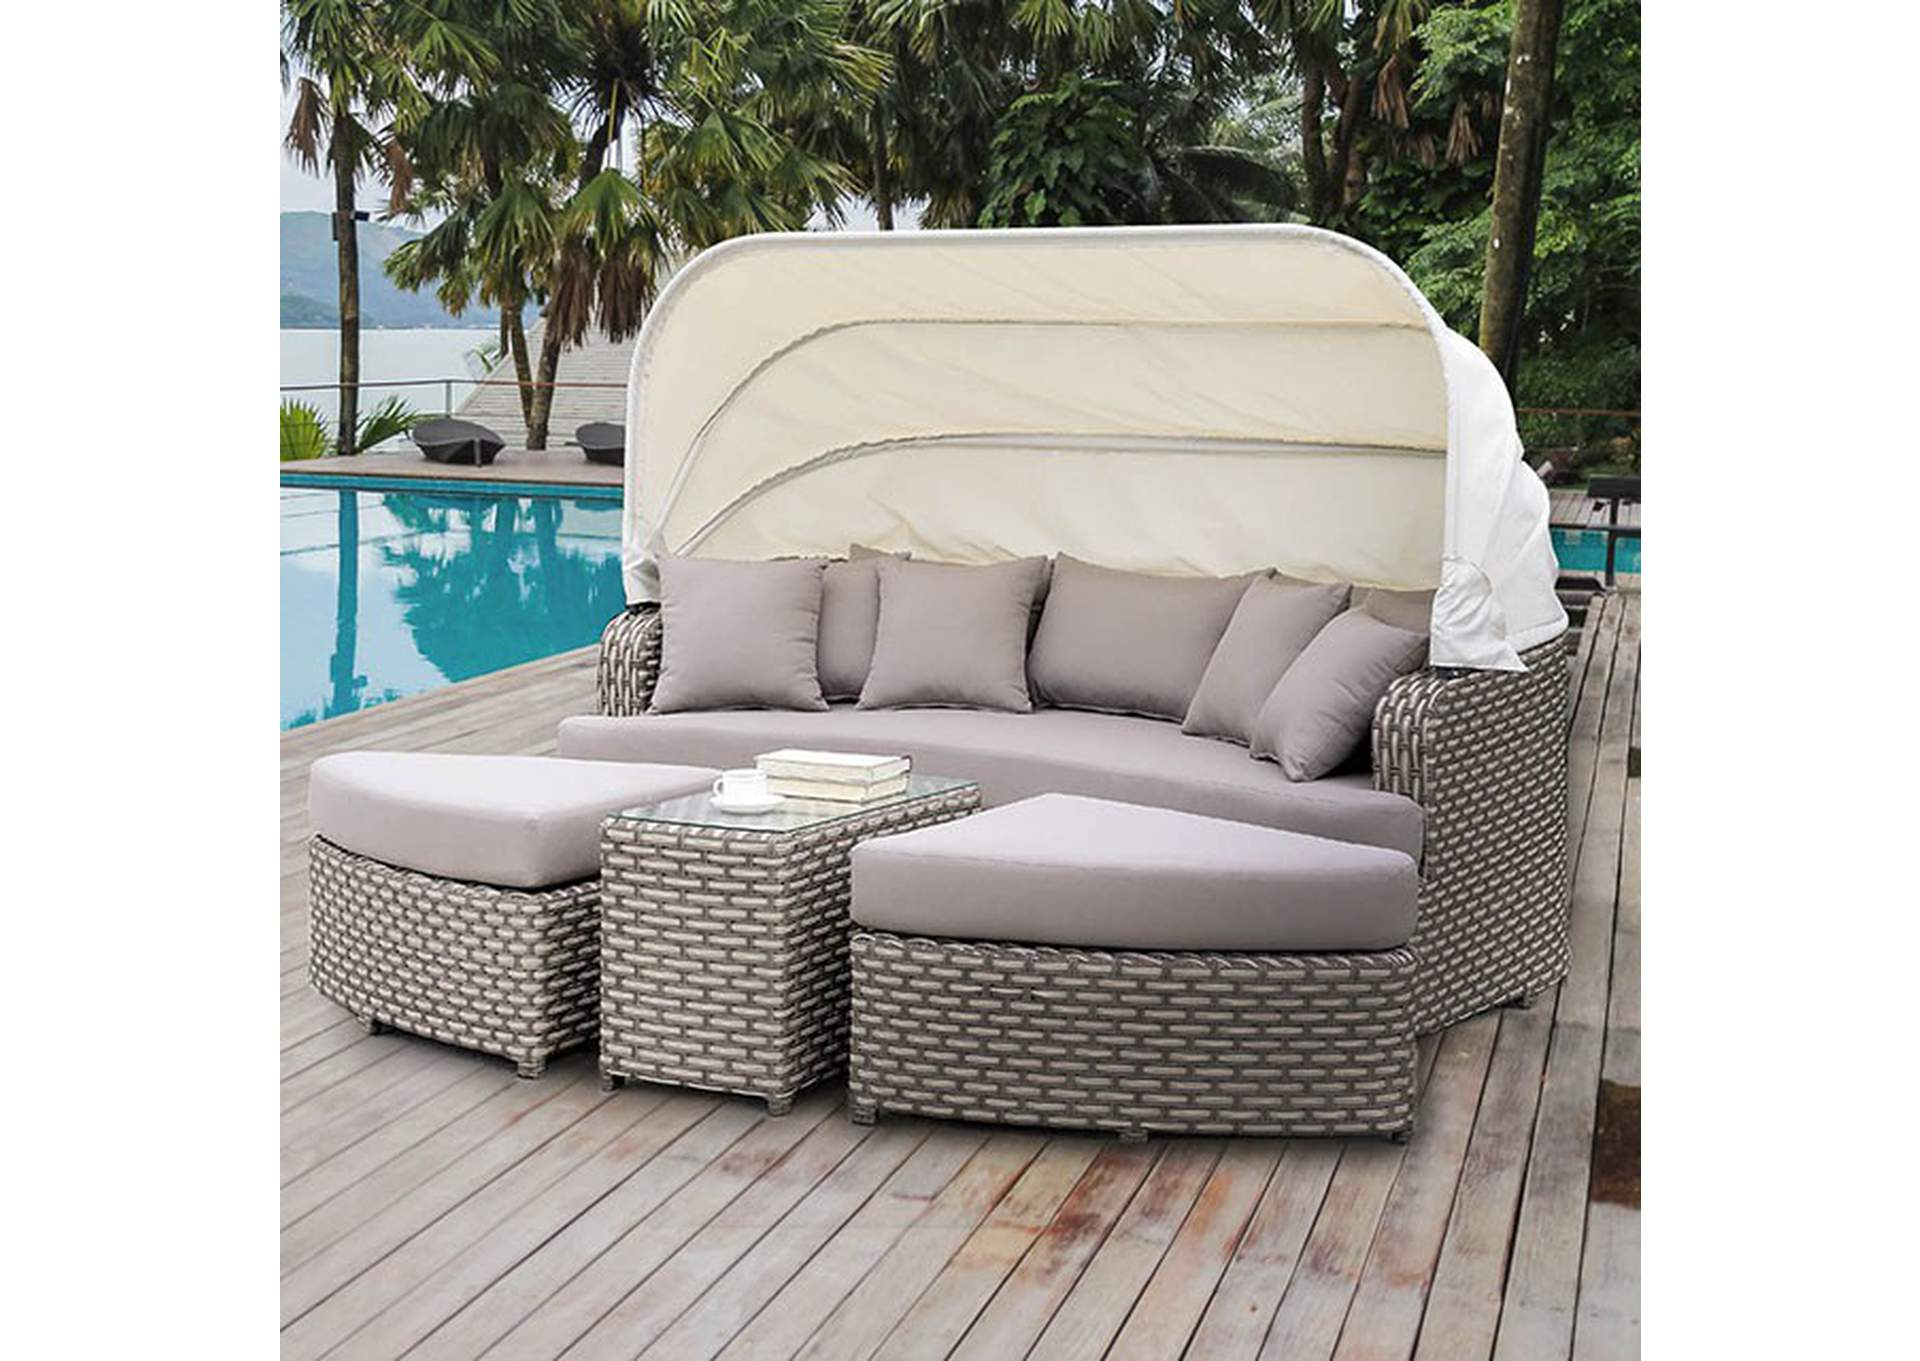 Riya Gray 4 Piece Patio Daybed,Furniture of America